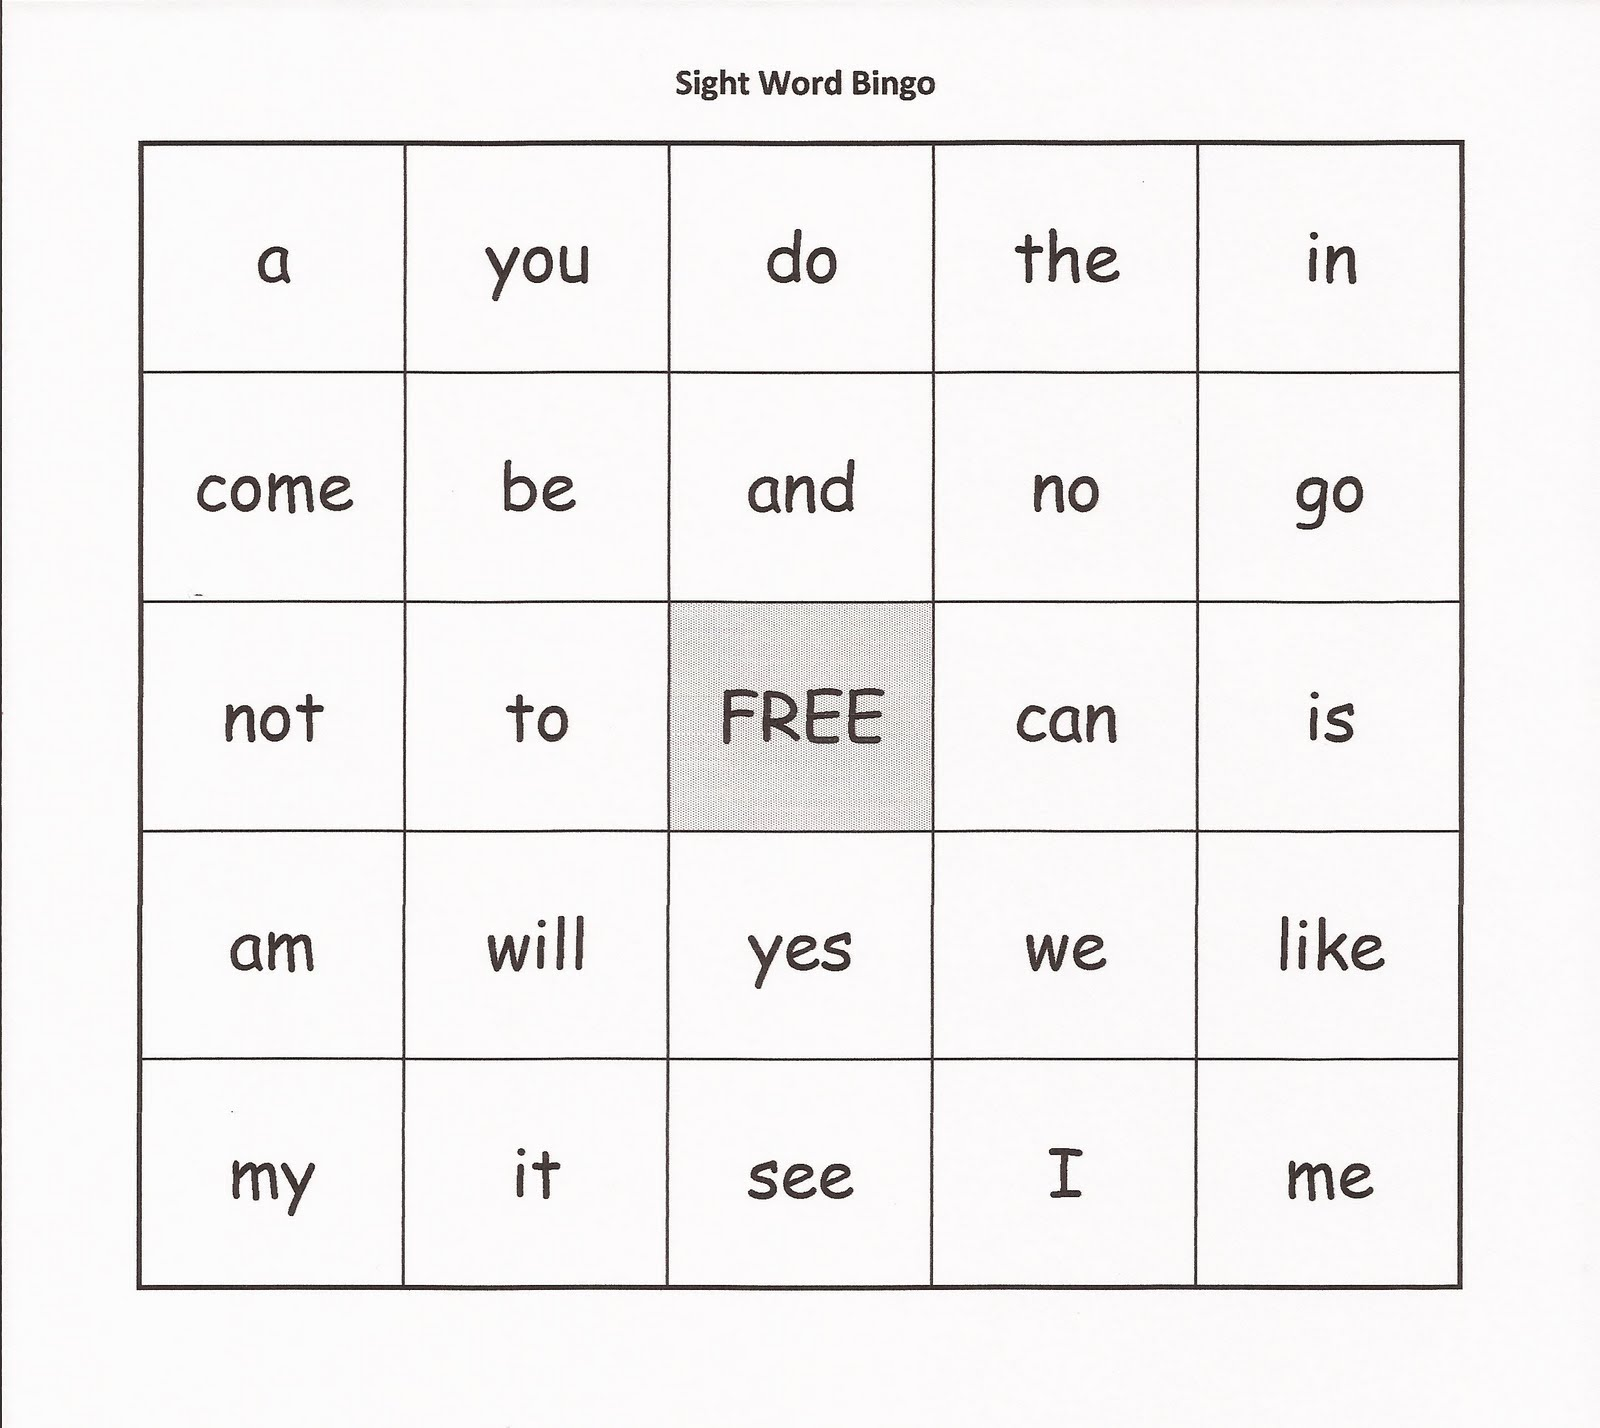 Irresistible image within sight word bingo printable